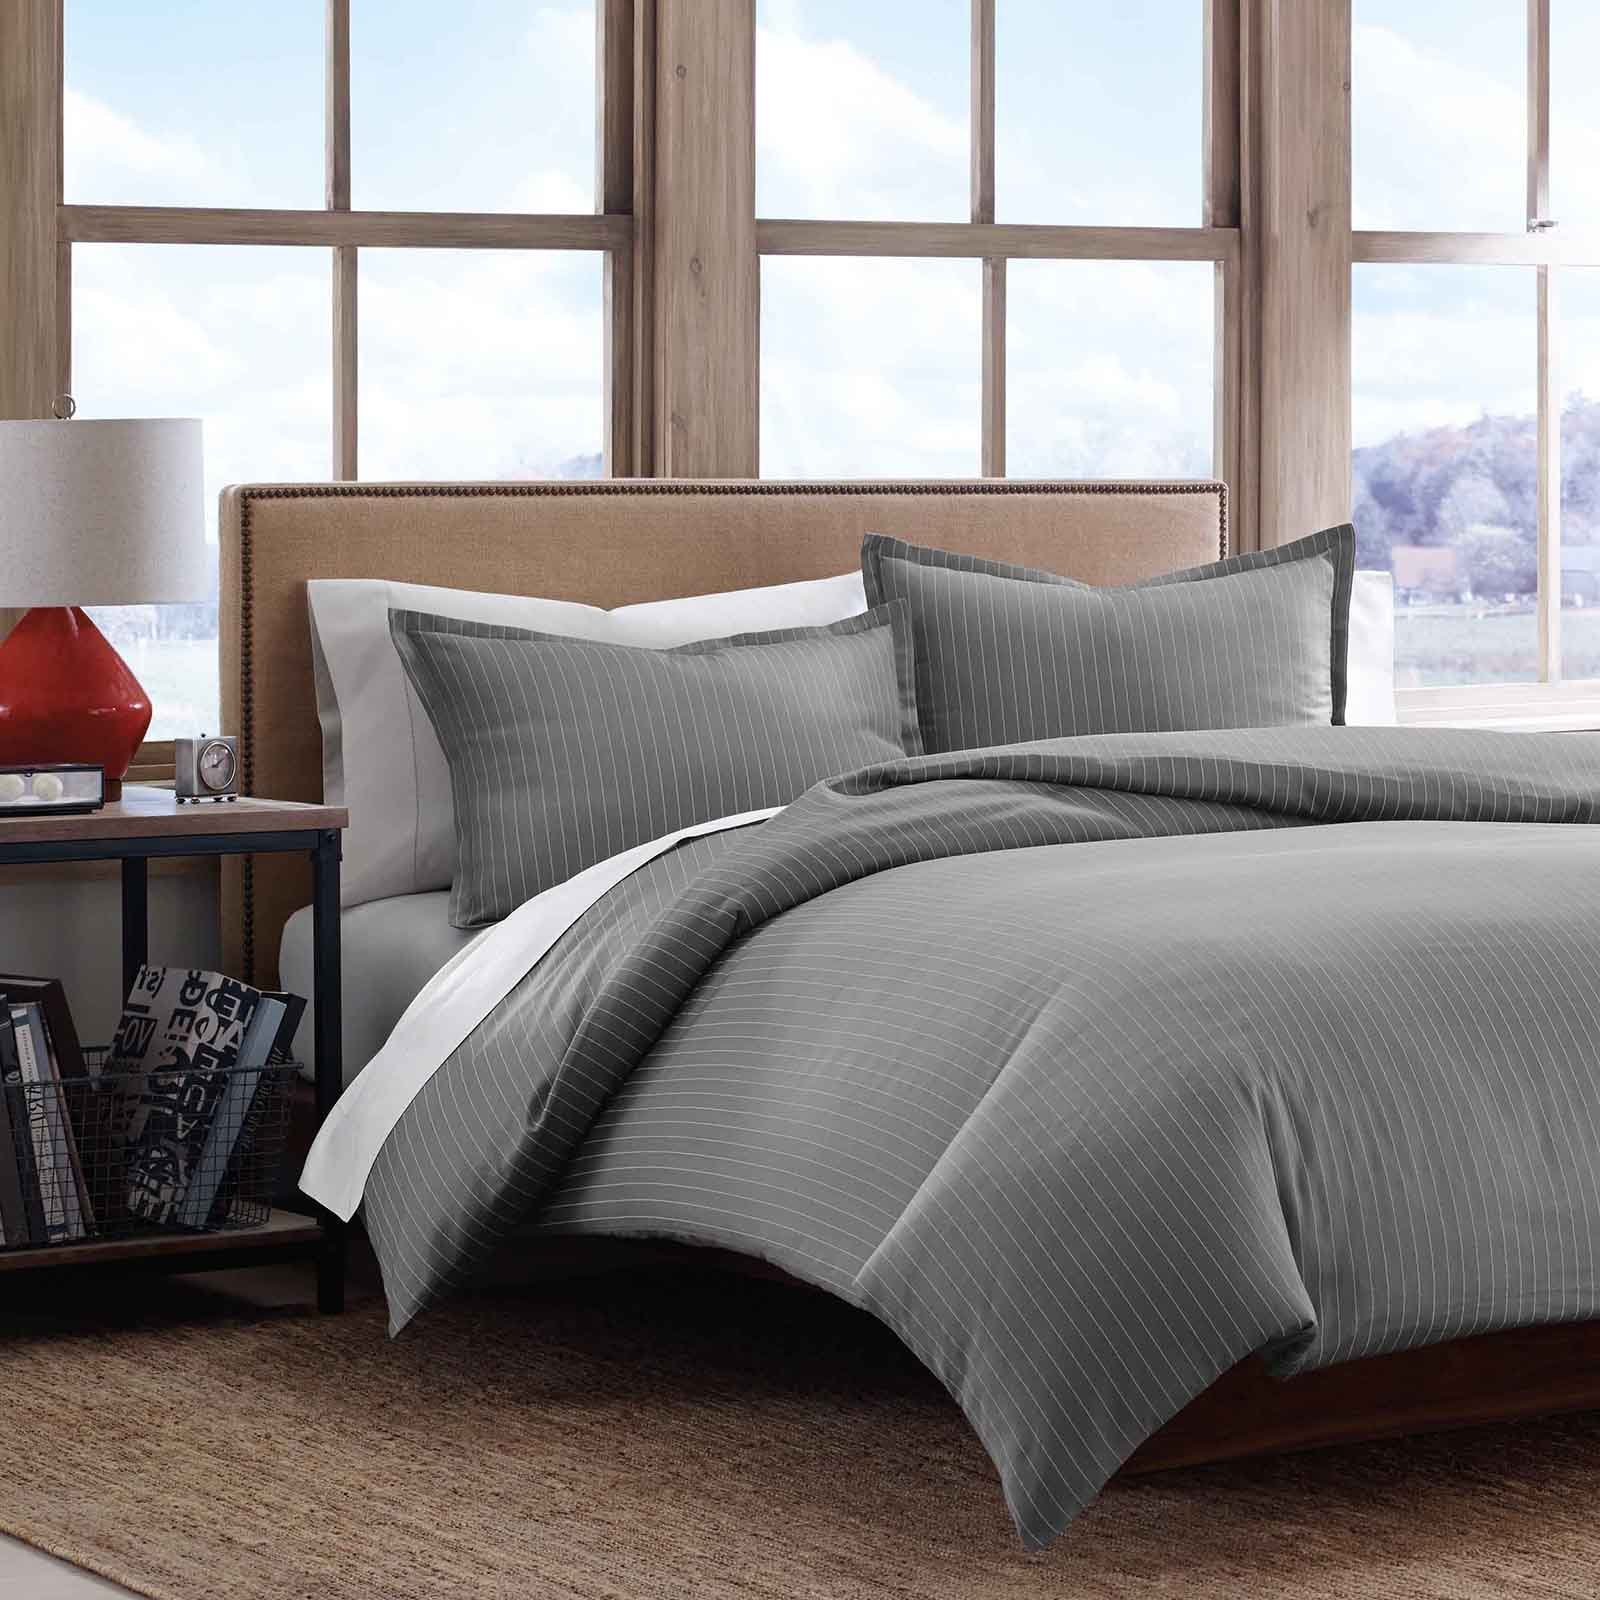 Best Eddie Bauer Pinstripe Cotton Sateen Duvet Cover Set Bedding And Bedding Sets At Hayneedle With Pictures